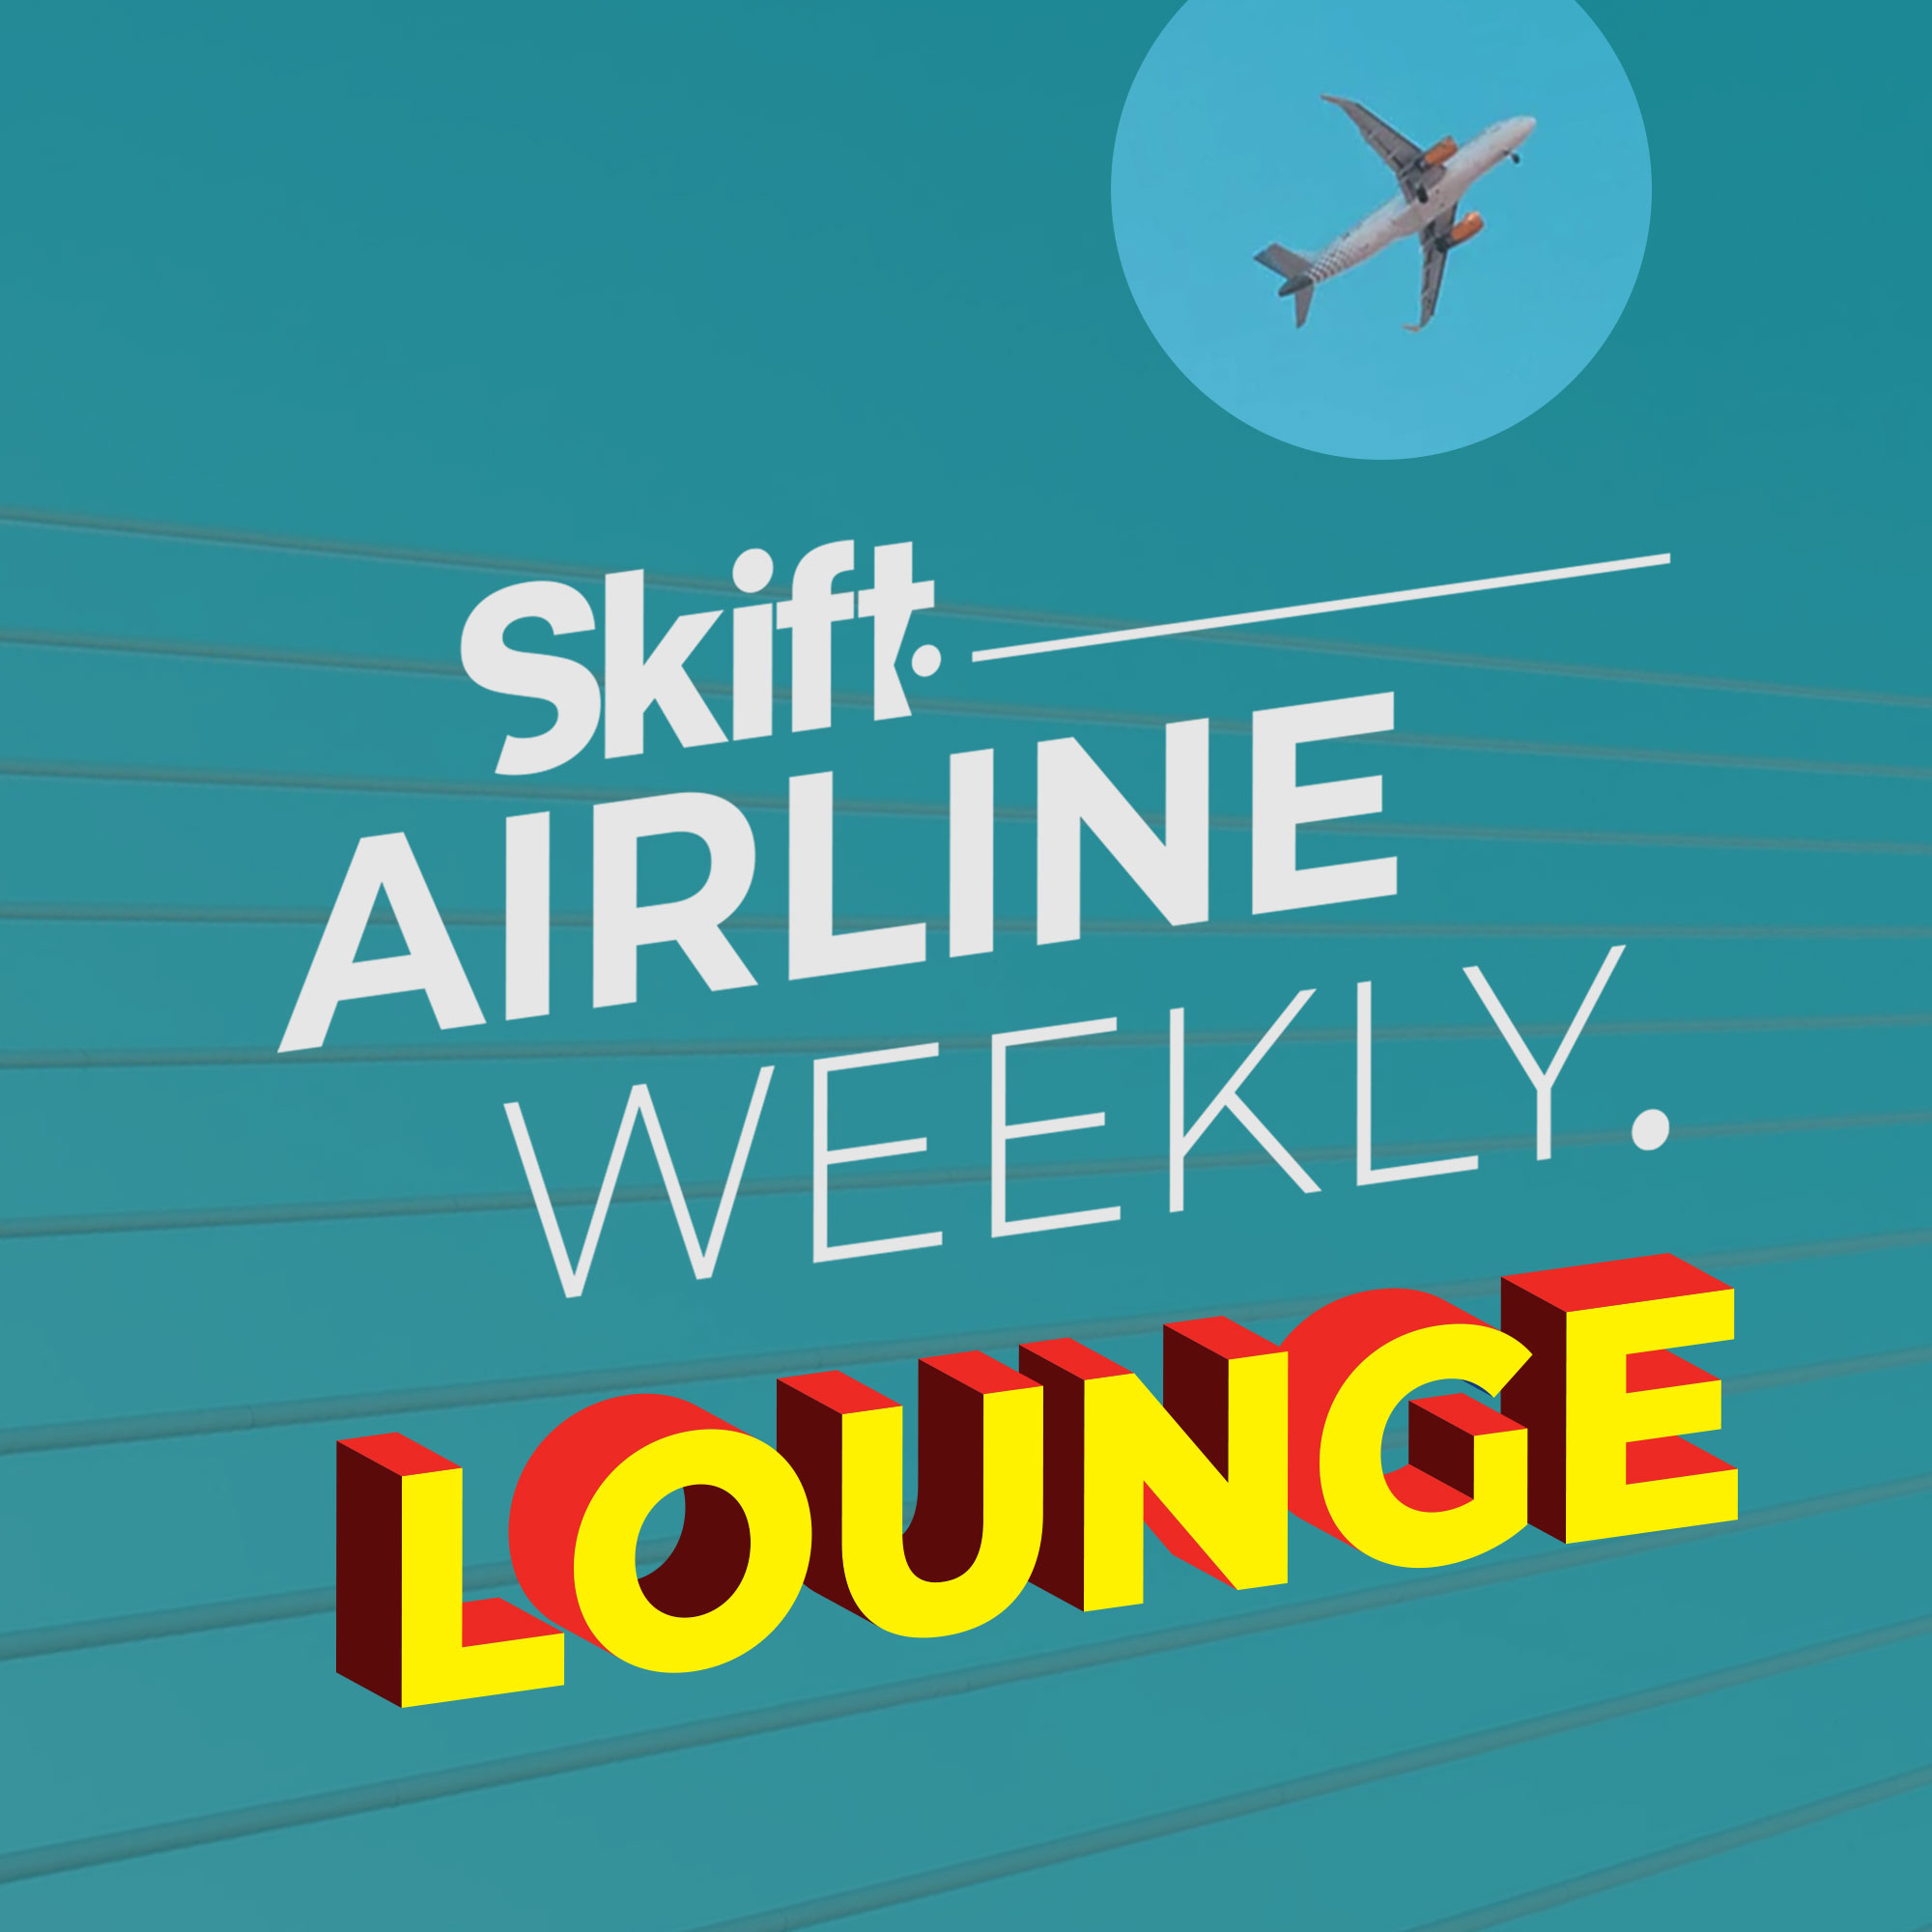 Airline Weekly Lounge - Airline Weekly Lounge is an aviation podcast produced by Skift Airline Weekly. It is hosted by Airline Weekly co-founders Jason Cottrell and Seth Kaplan.Airline Weekly Lounge primarily covers airline finances, and thus is very numbers heavy. But, Jason and Seth find a way to make numbers more interesting than anyone would think possible. They are able to water the content down enough that even non-financially savvy listeners can still enjoy/comprehend.I suggest finding a distraction free environment to listen. If you blink, you're certain to miss an important metric (or five) in this fast paced, highly informative podcast.Frequency: Approximately every two weeks - though there hasn't been a new release since early 2019Length: 30 minutes on average